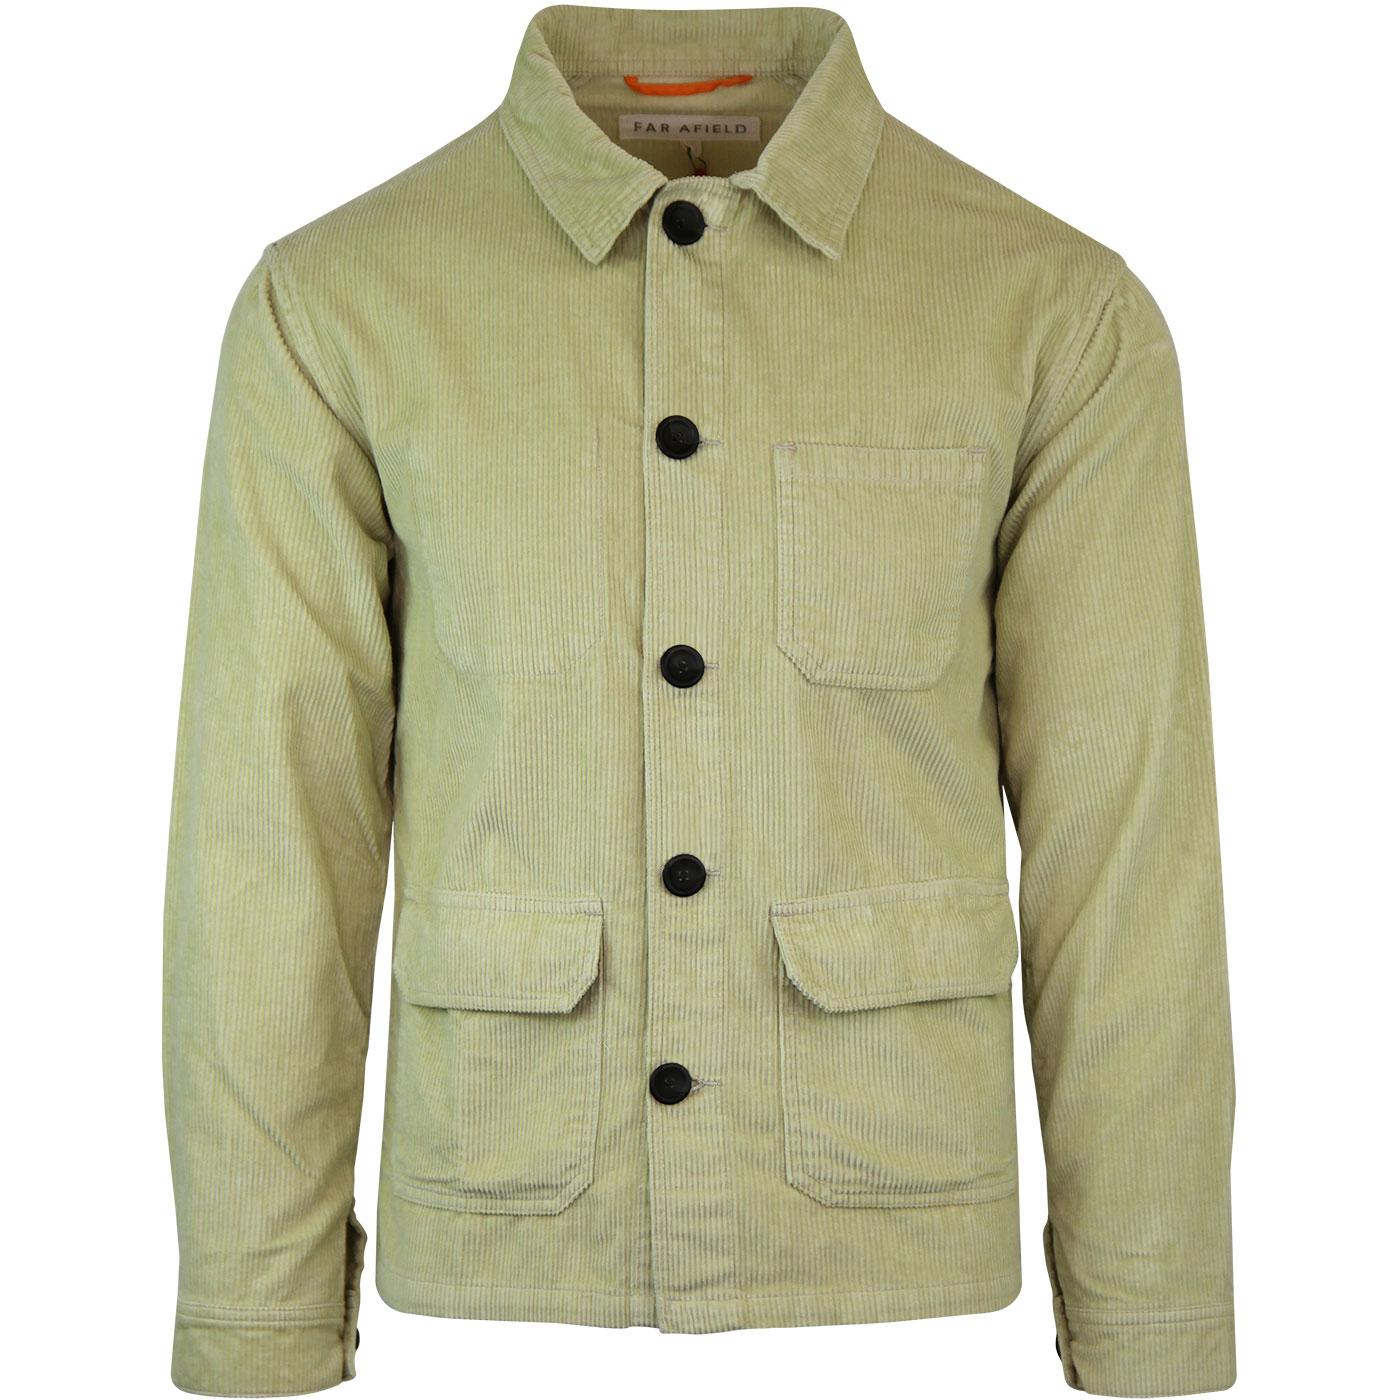 Porter FAR AFIELD Mod Cord Overshirt Jacket GRAVEL